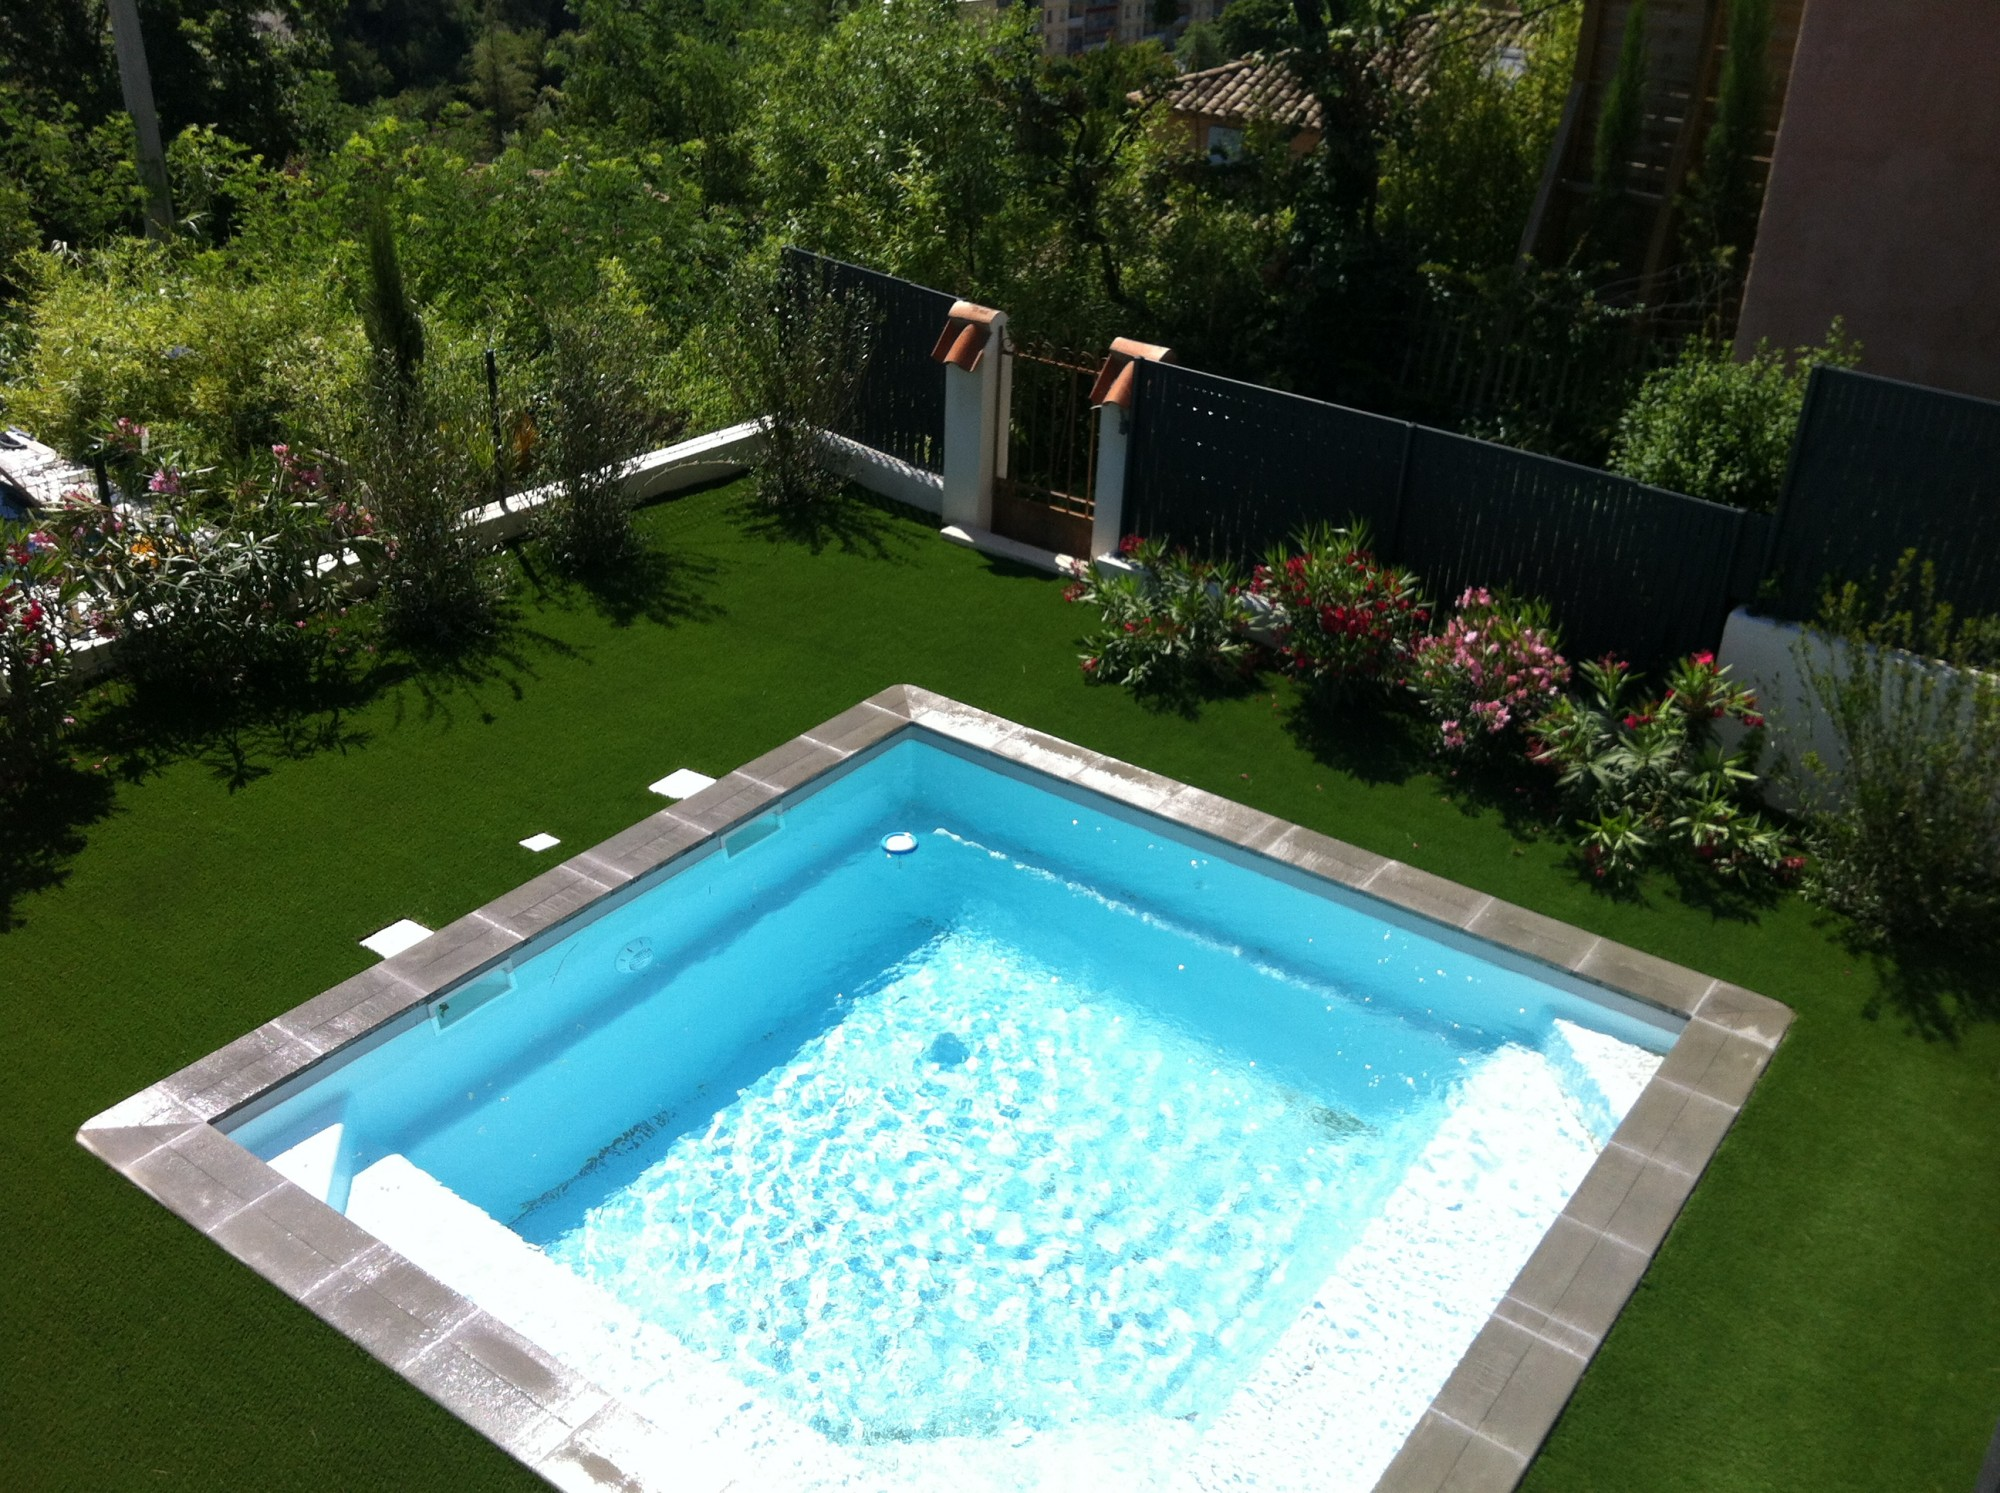 Pose gazon synthetique autour piscine gazon et pelouse for Idee tour de piscine